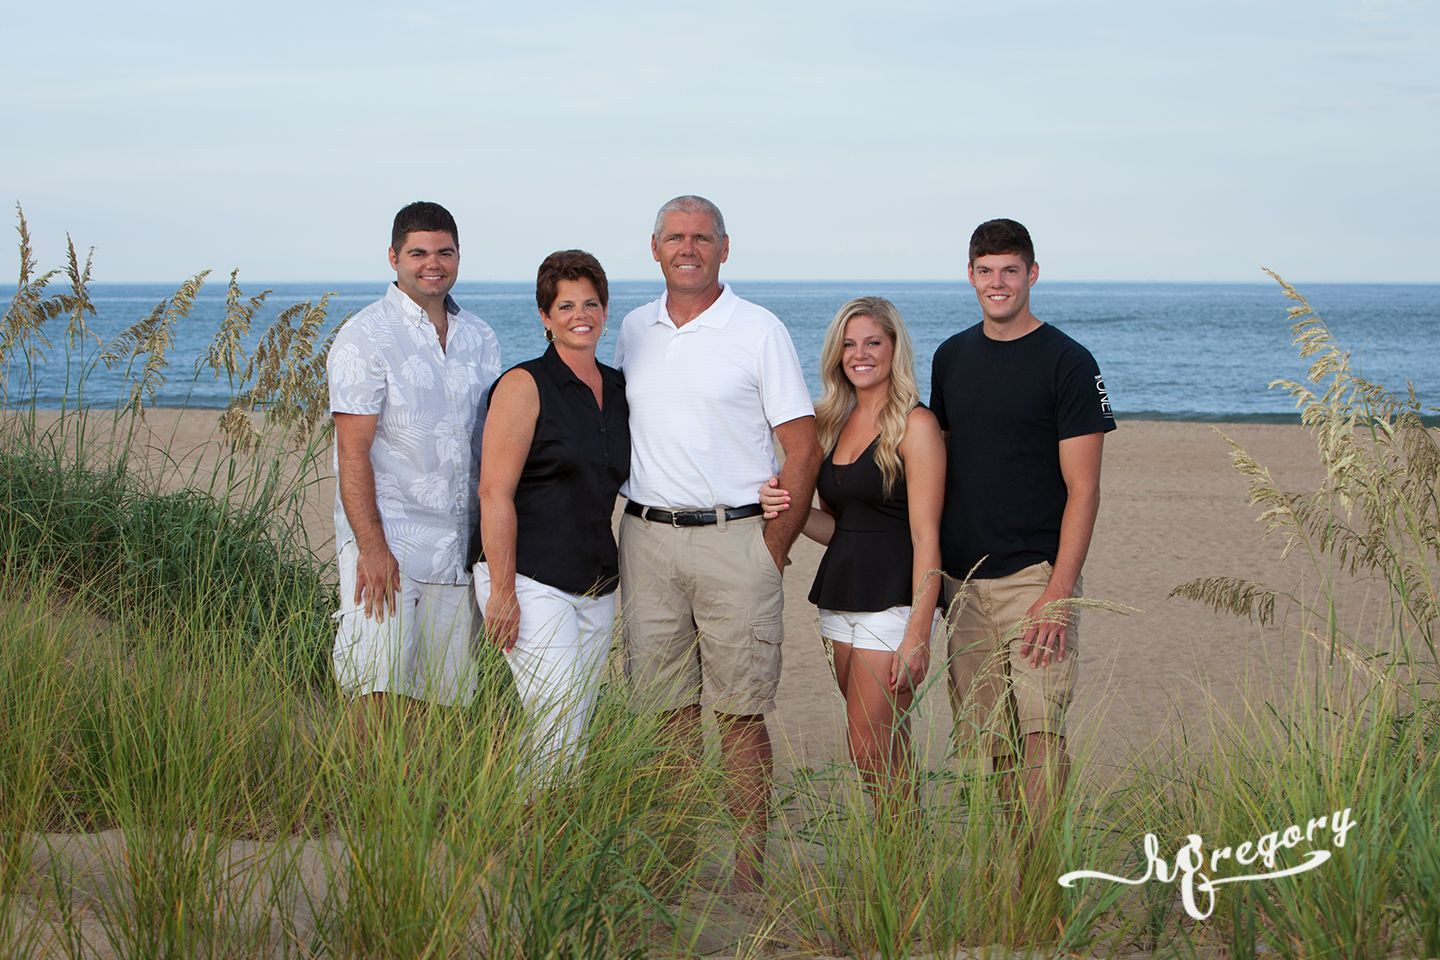 Dalziel family virginia beach portrait